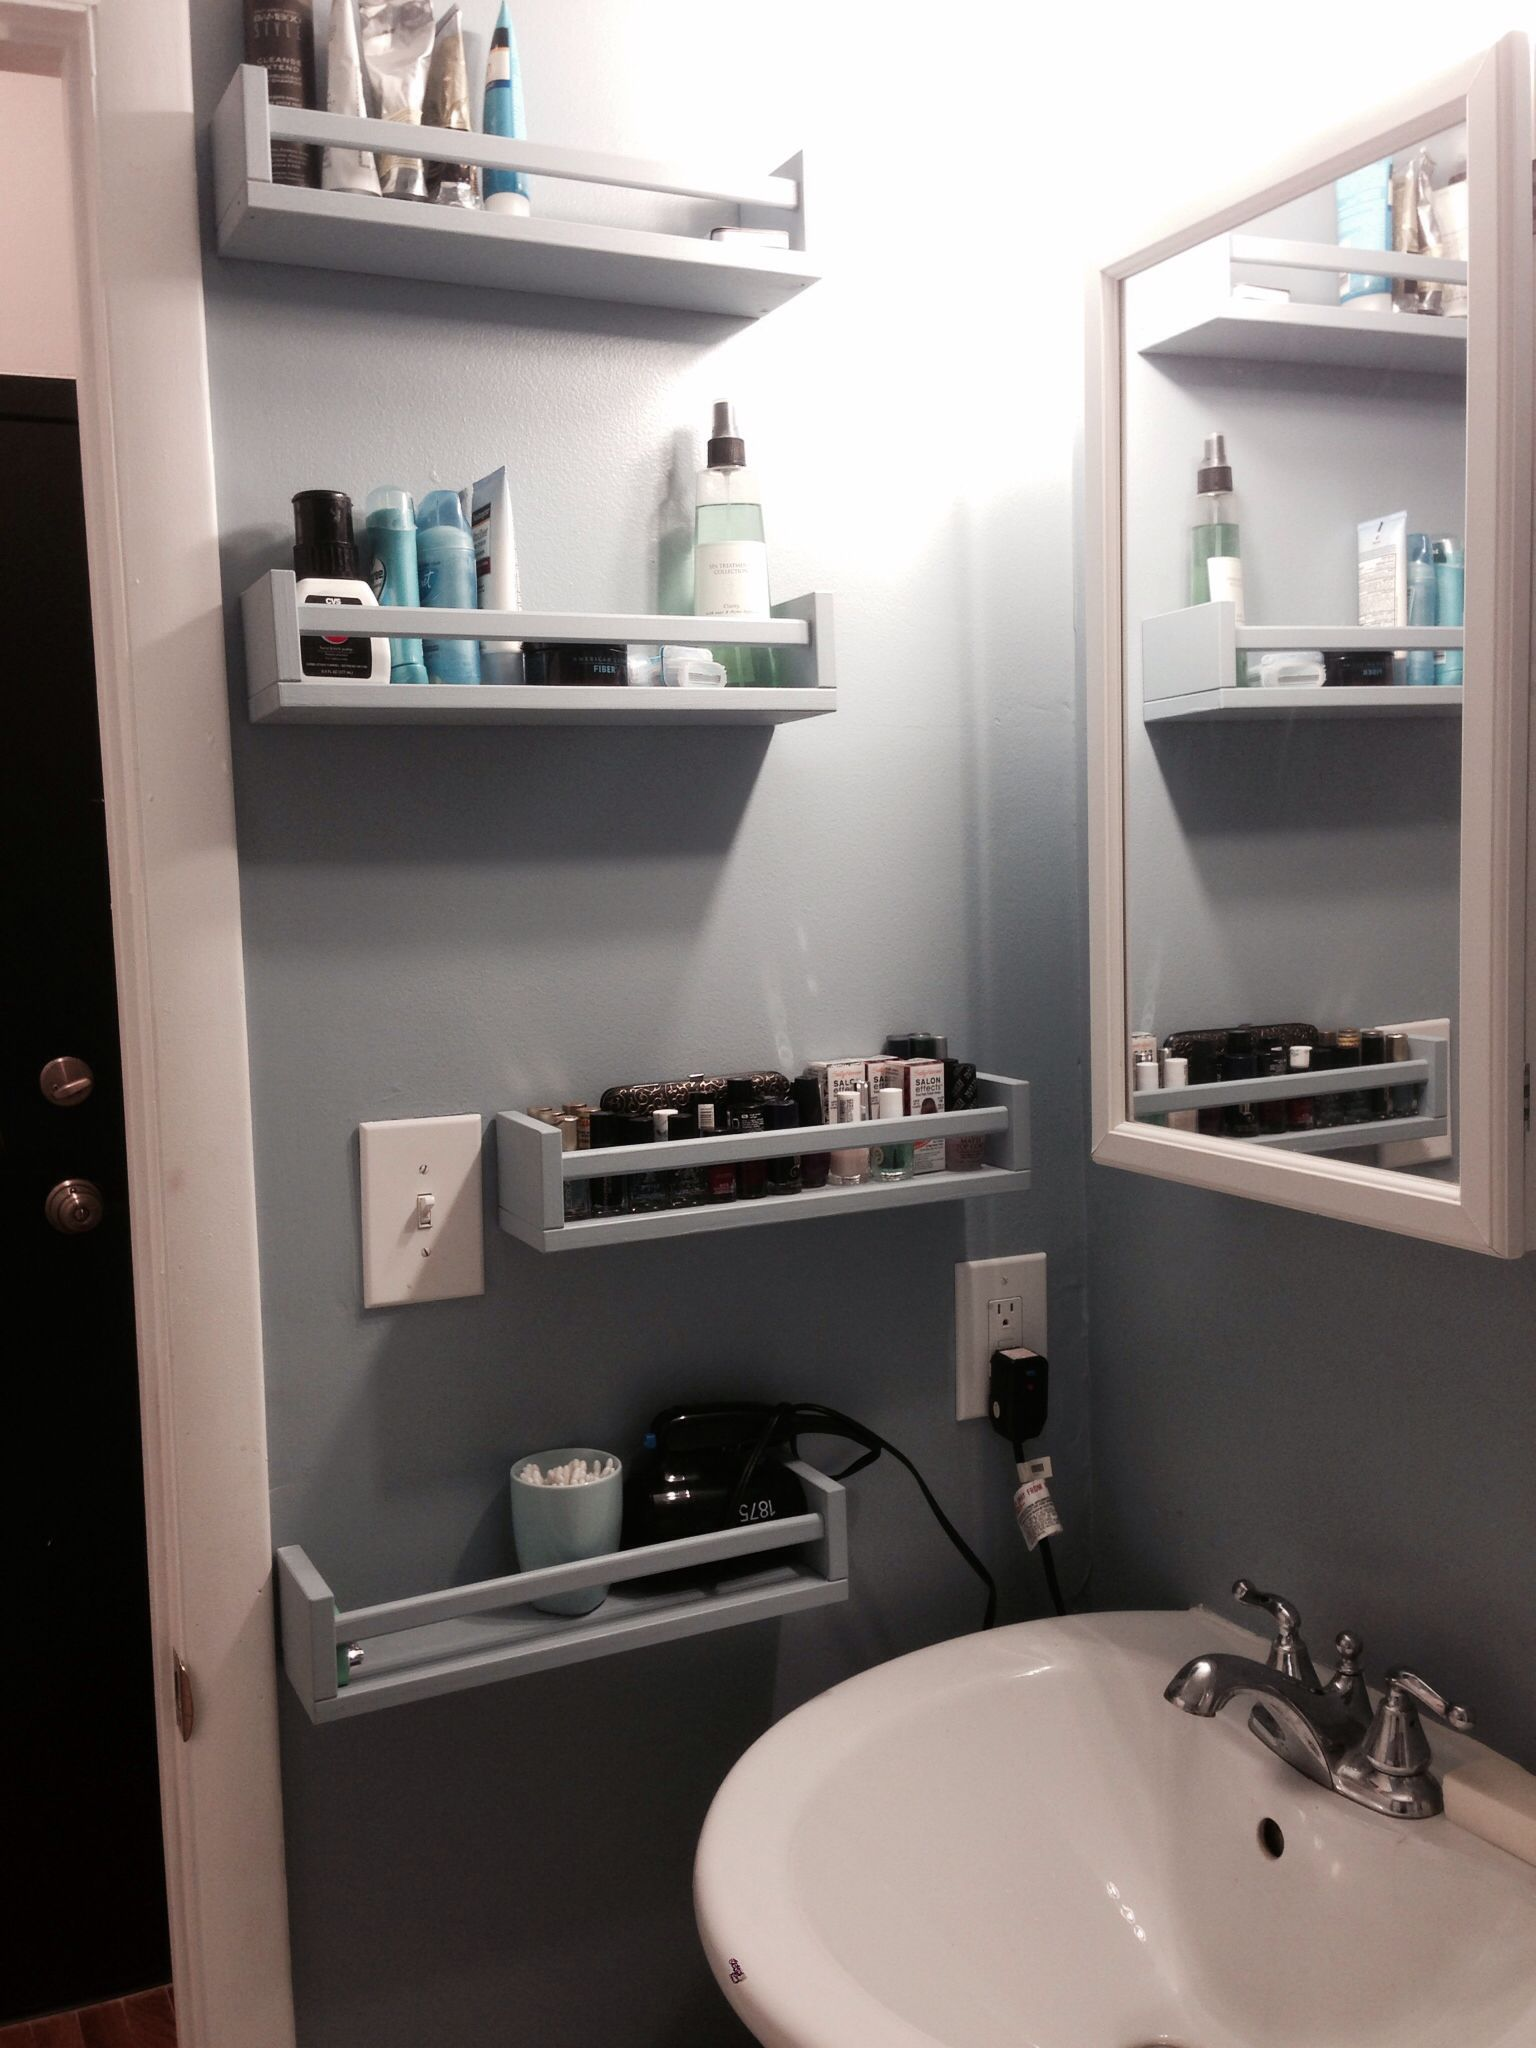 Ikea bekvam spice racks as bathroom storage bathroom - Rangement salle de bain ikea ...